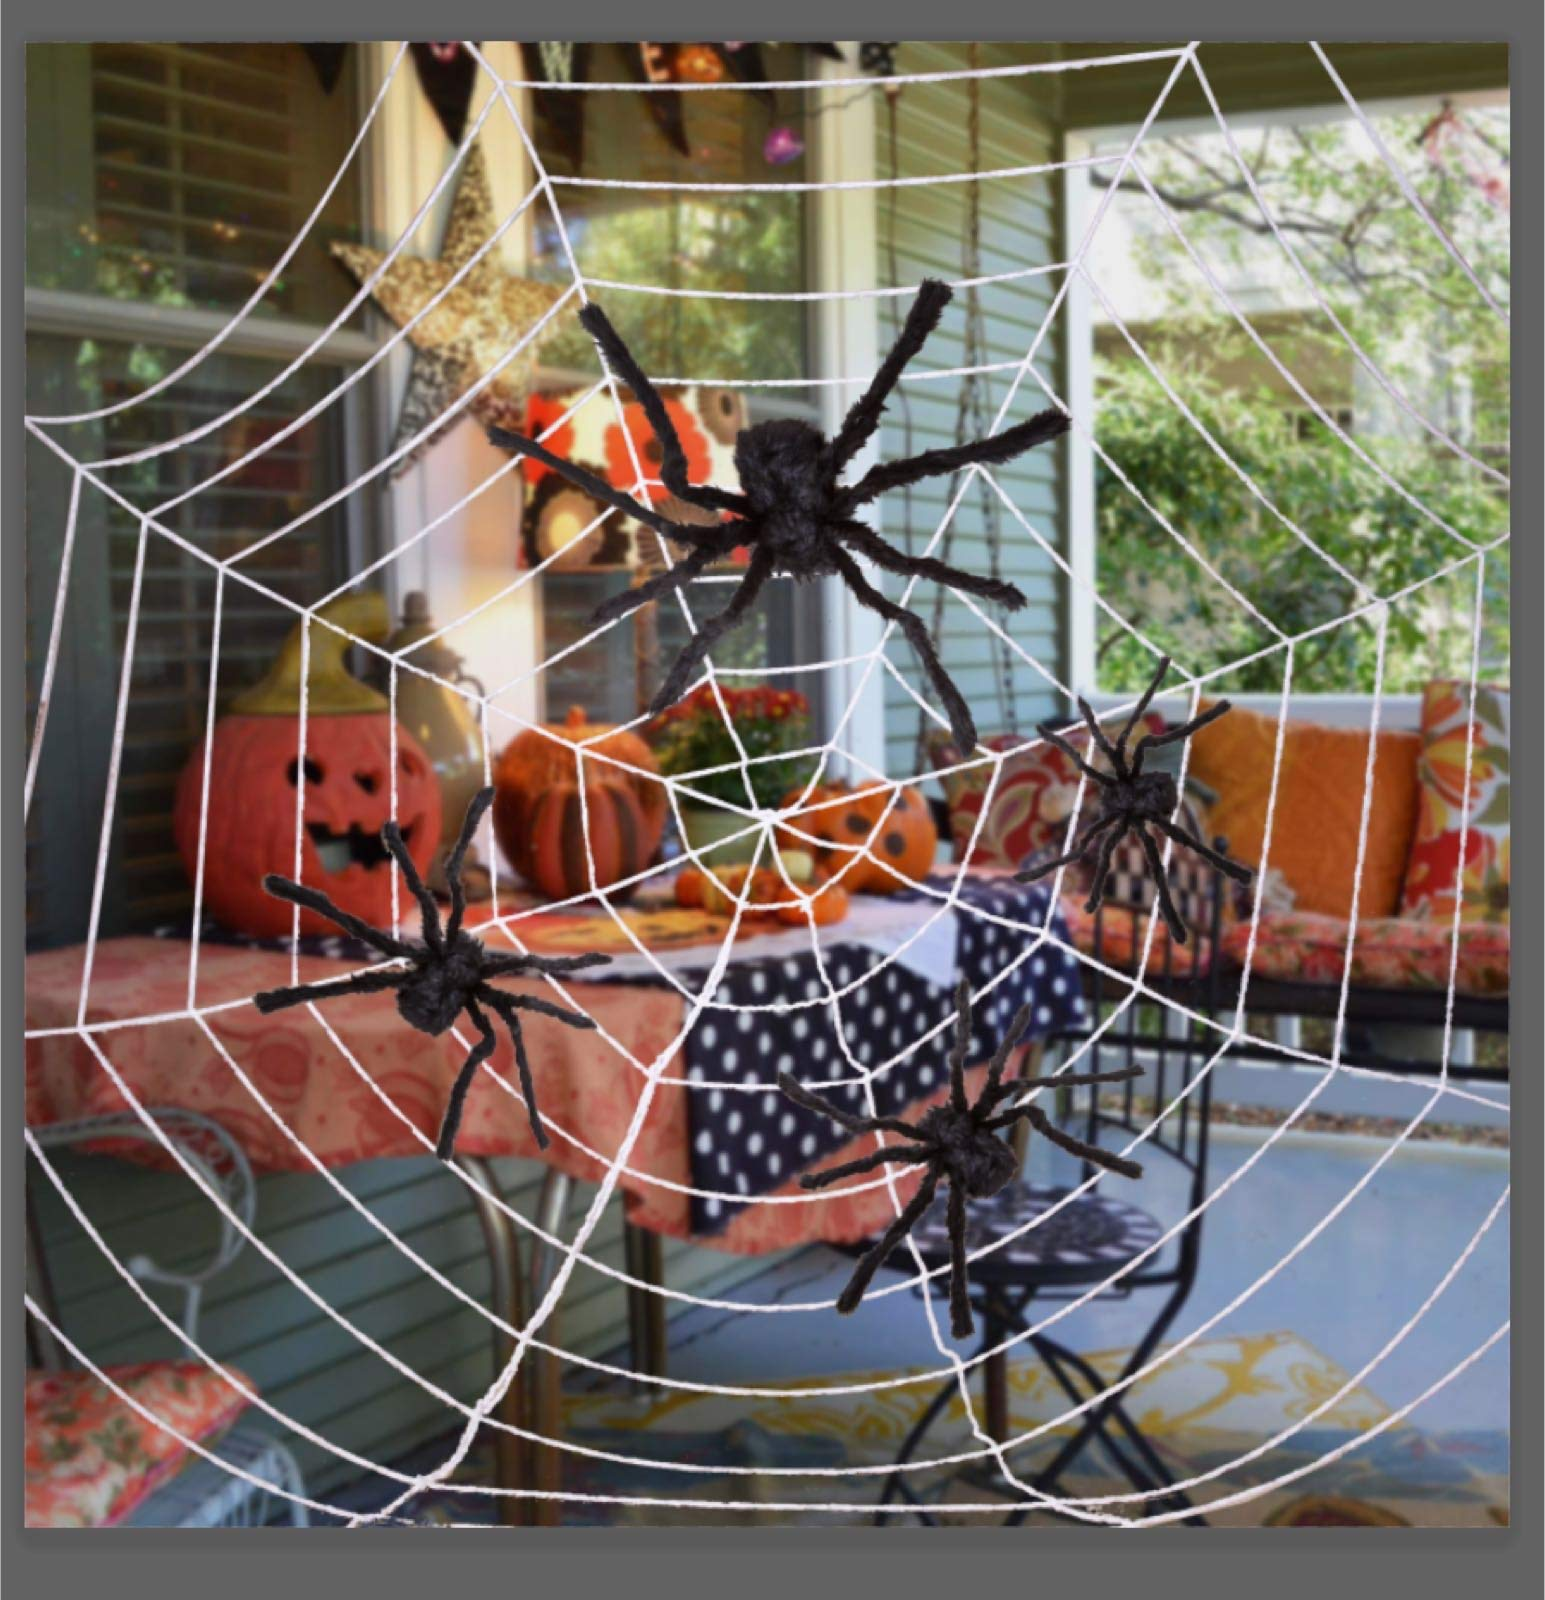 Four Halloween Realistic Hairy Spiders Set, Valuable Halloween Props, Halloween Spider Set for Indoor and Outside Decorations by JOYIN (Image #6)